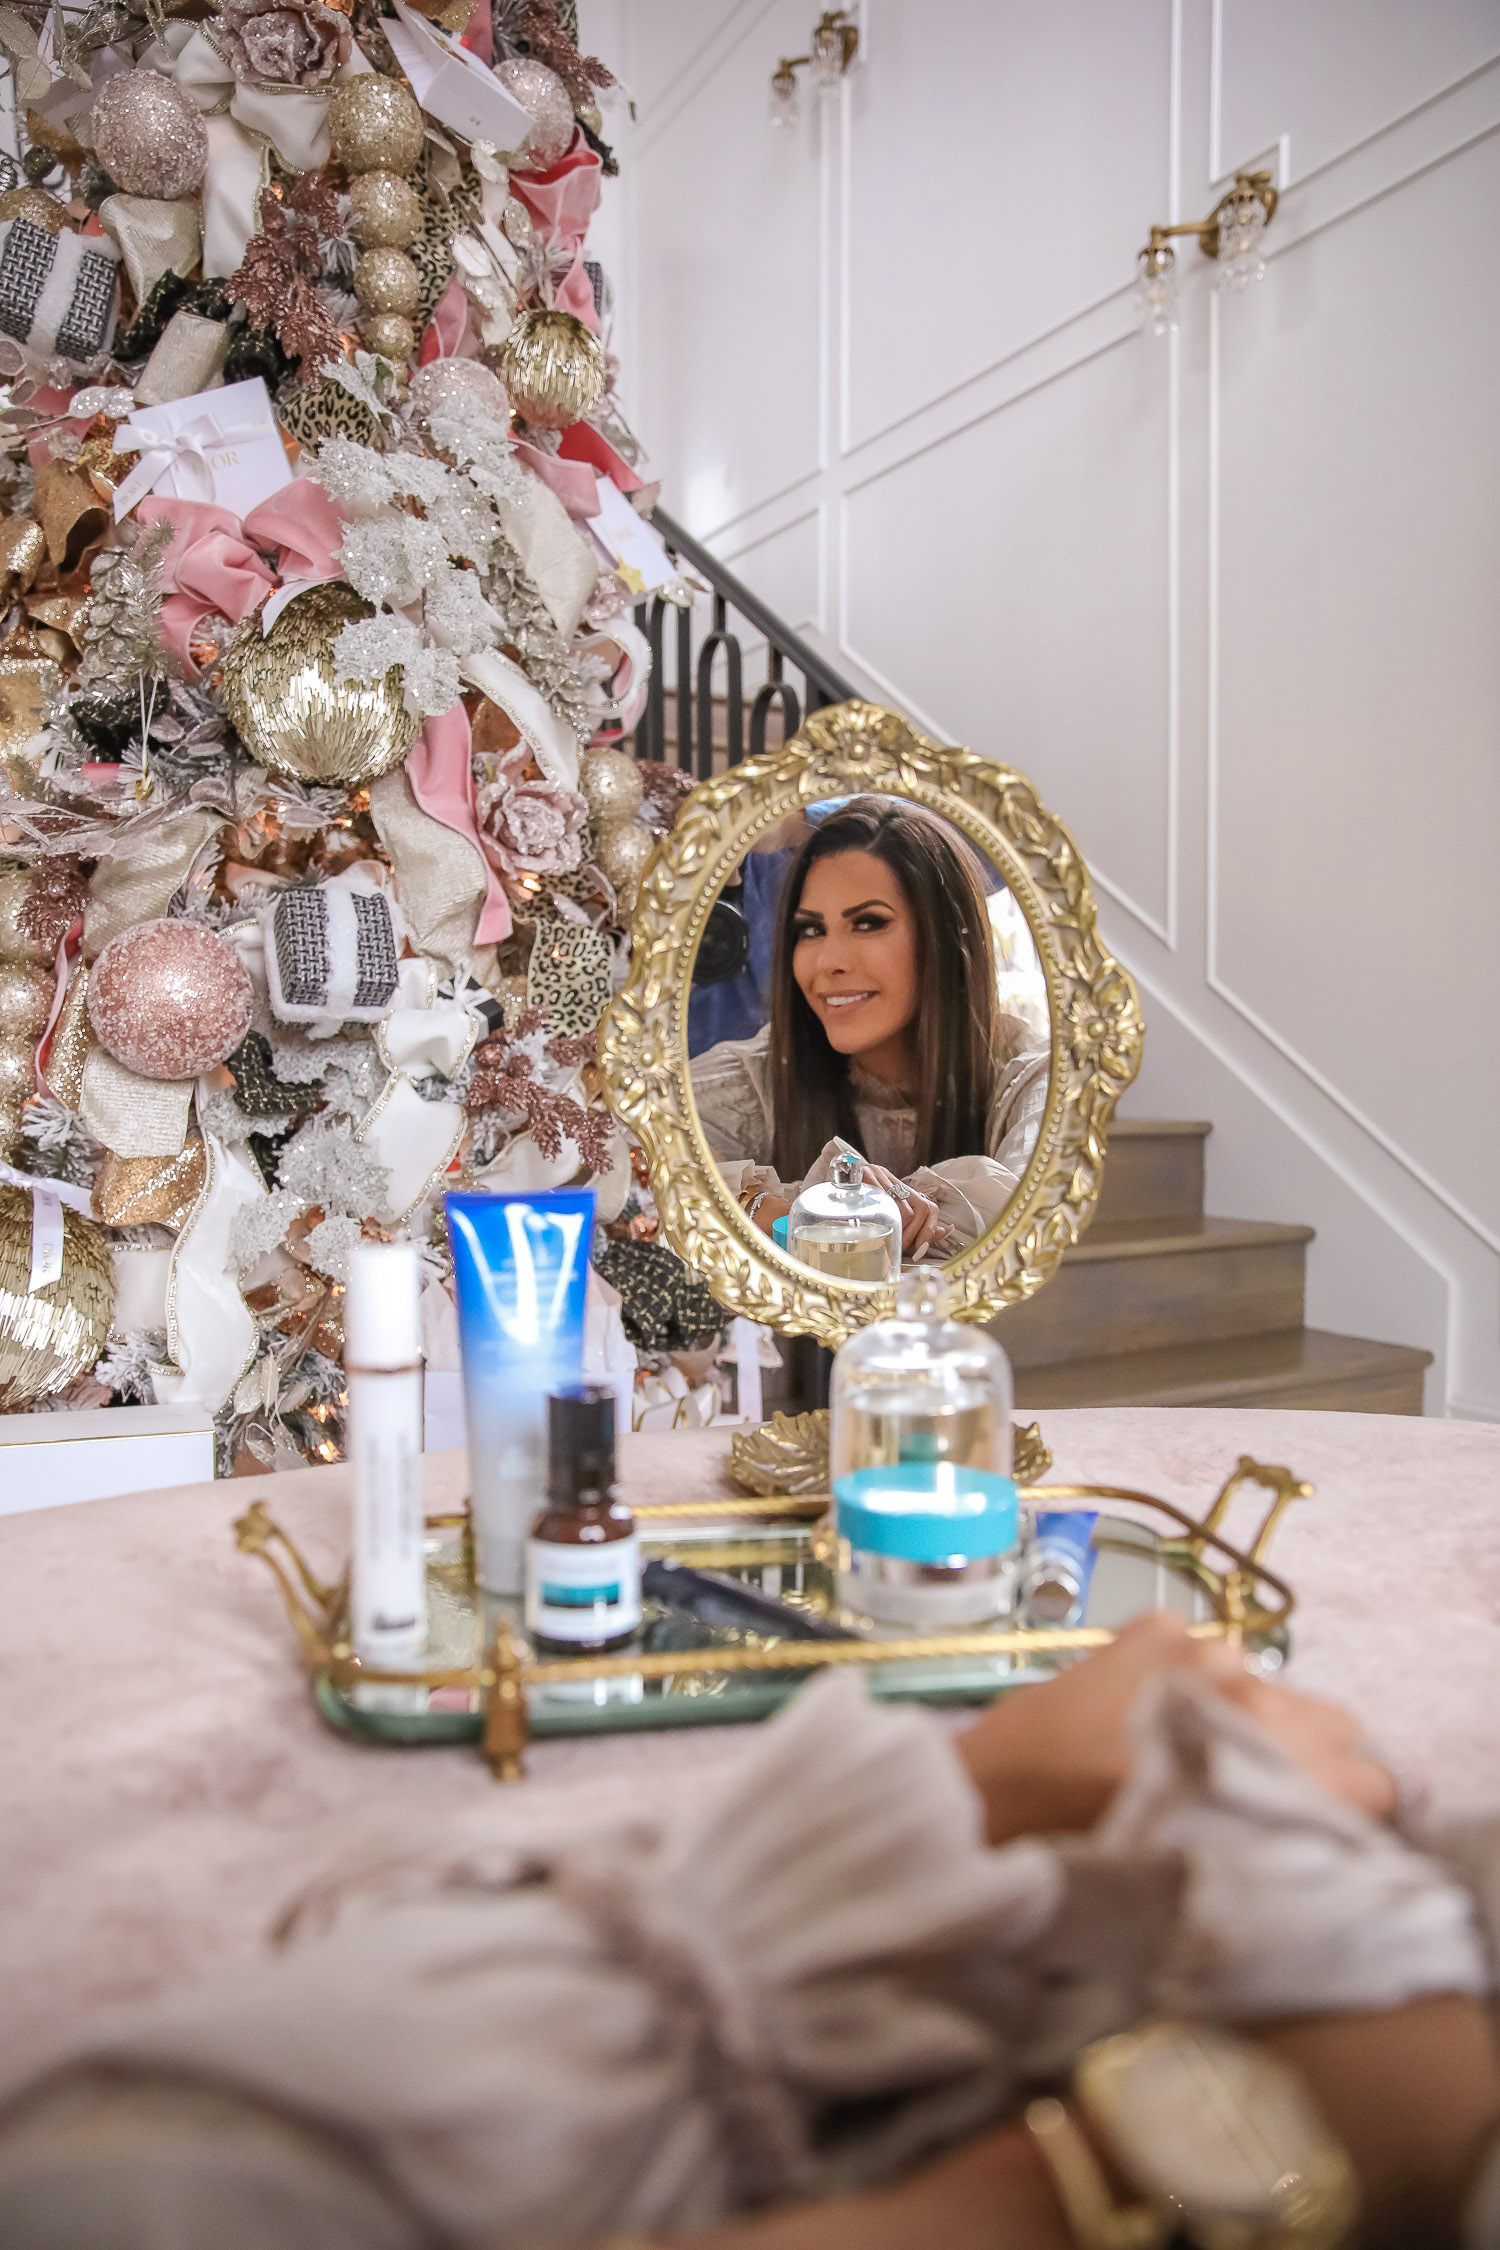 Dr Brandt review eye baggage, best dr brandt products, Dr Brandt Pores No More, Emily Gemma |Dr. Brandt by popular US beauty blog, The Sweetest Thing: image of Emily Gemma looking at her self in a Anthropologie hand mirror.